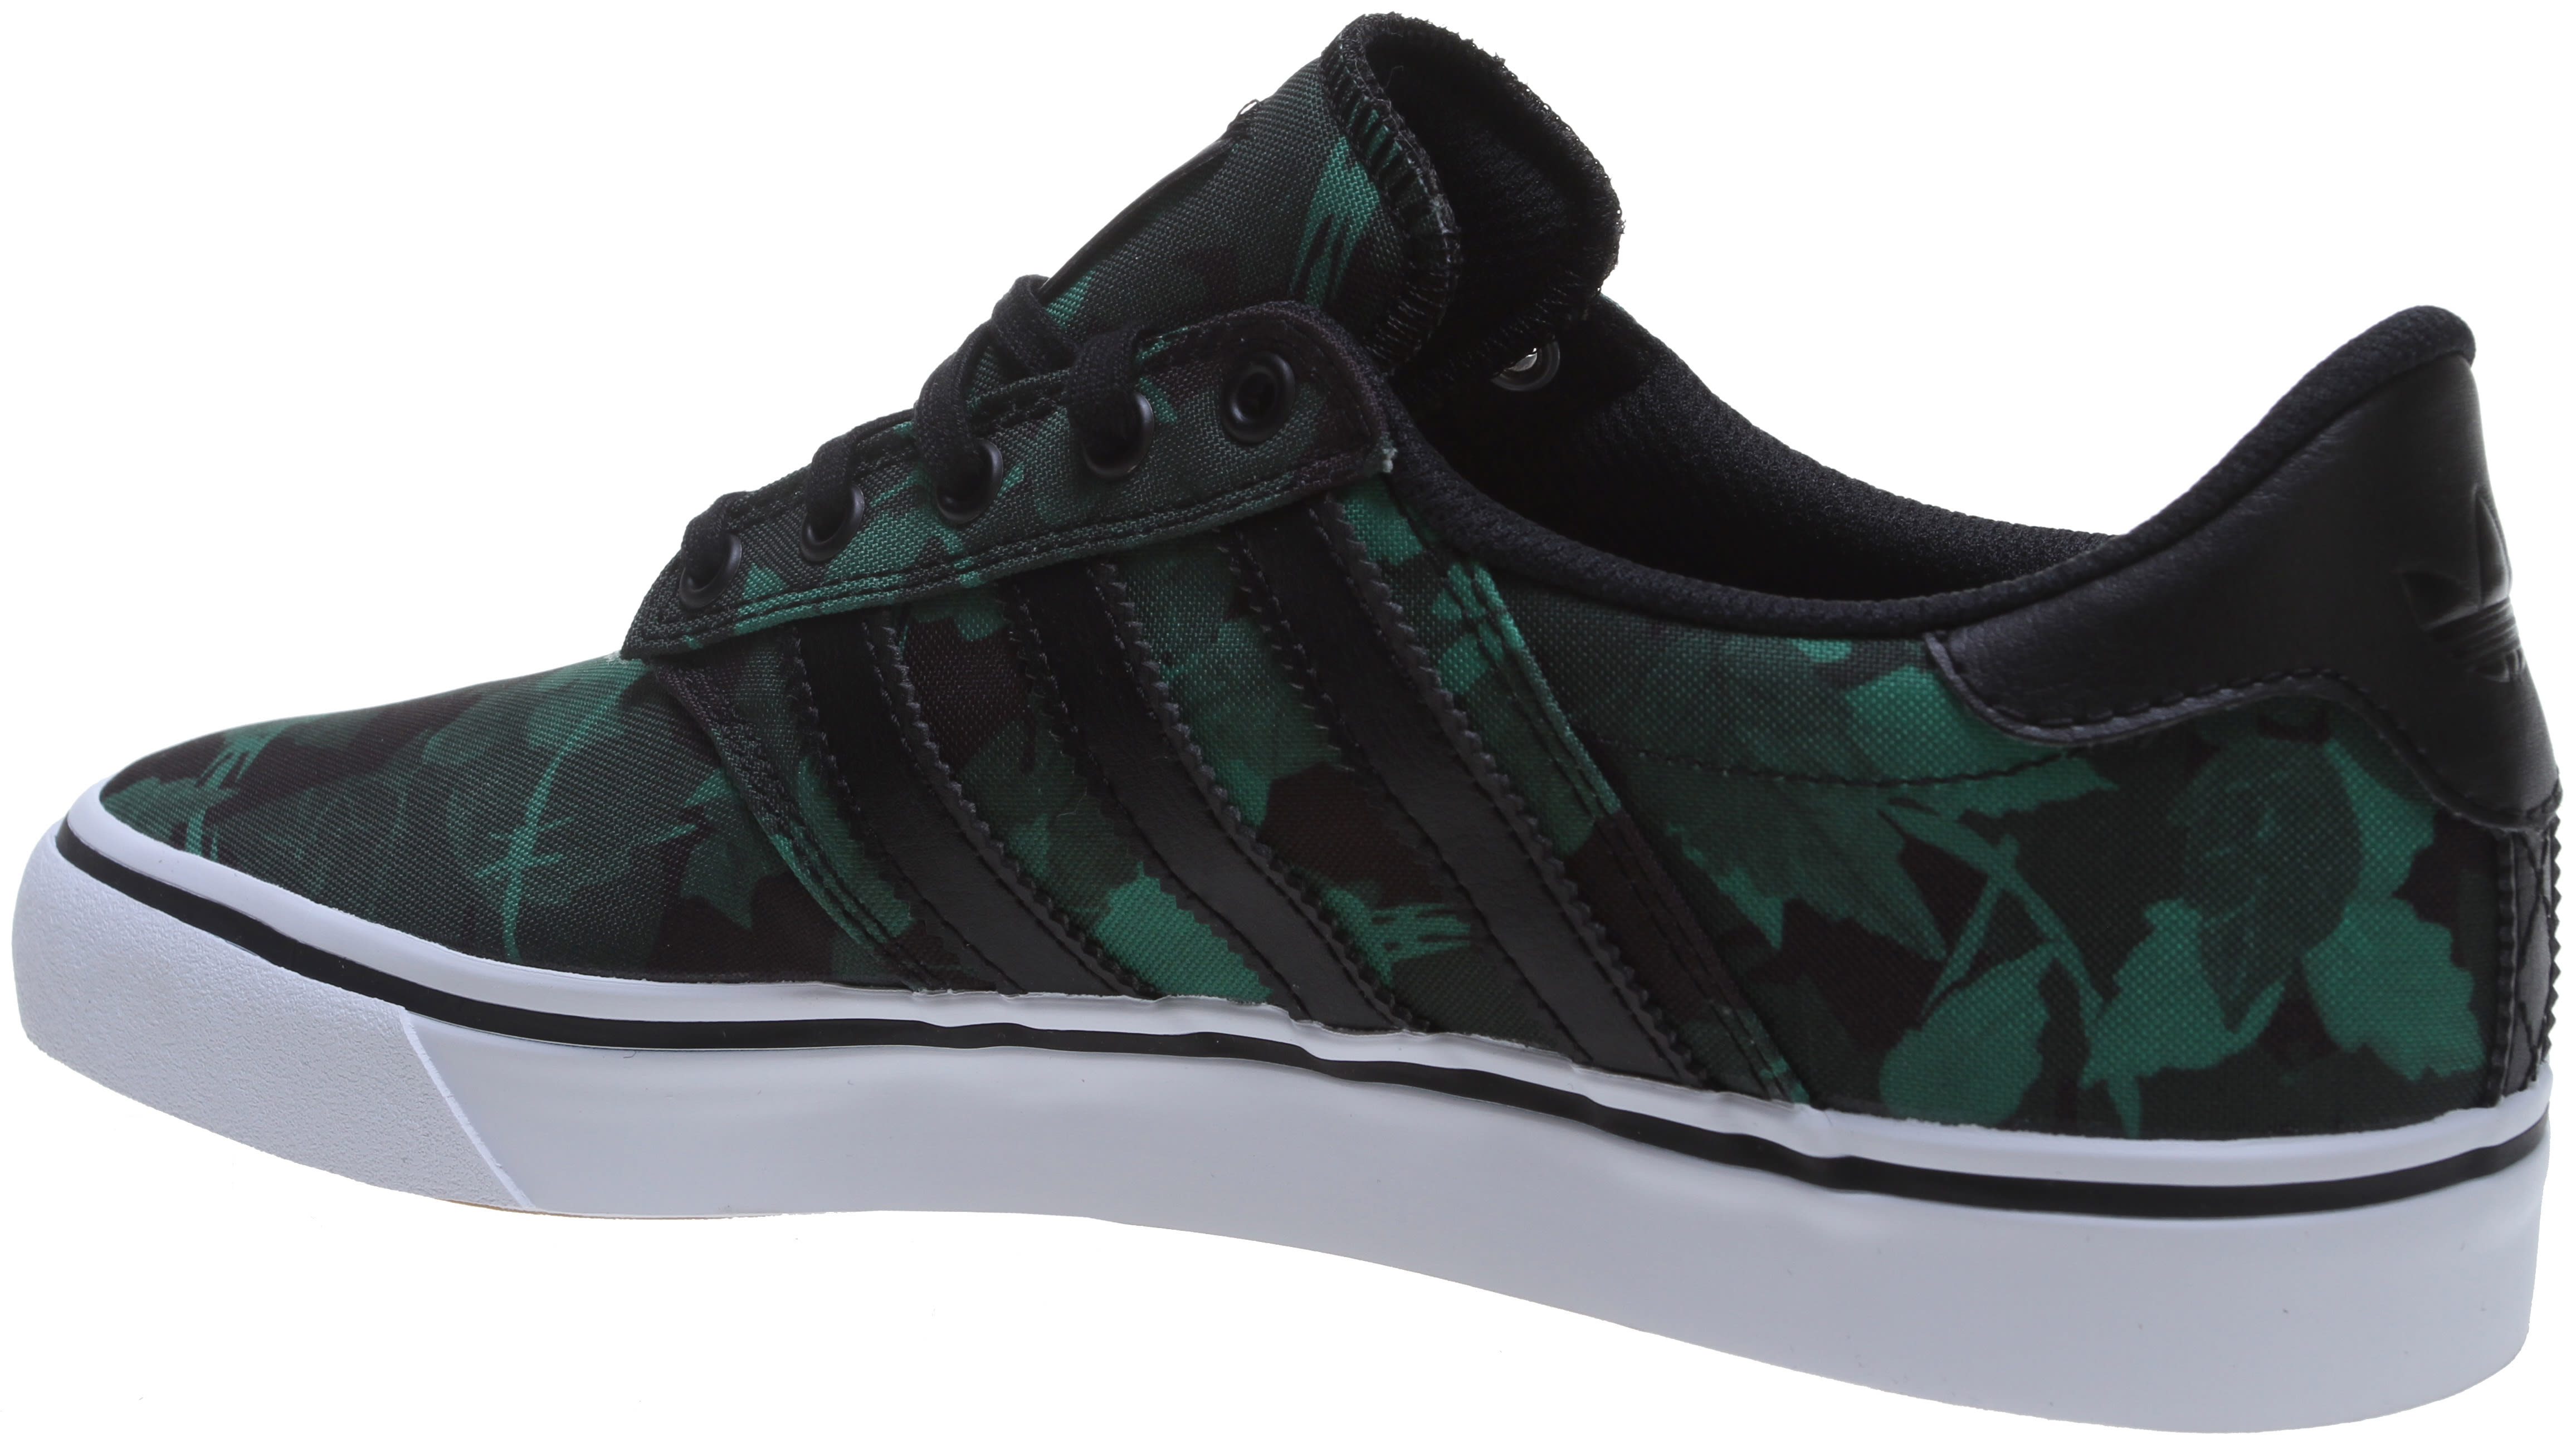 Adidas White Green Shoes